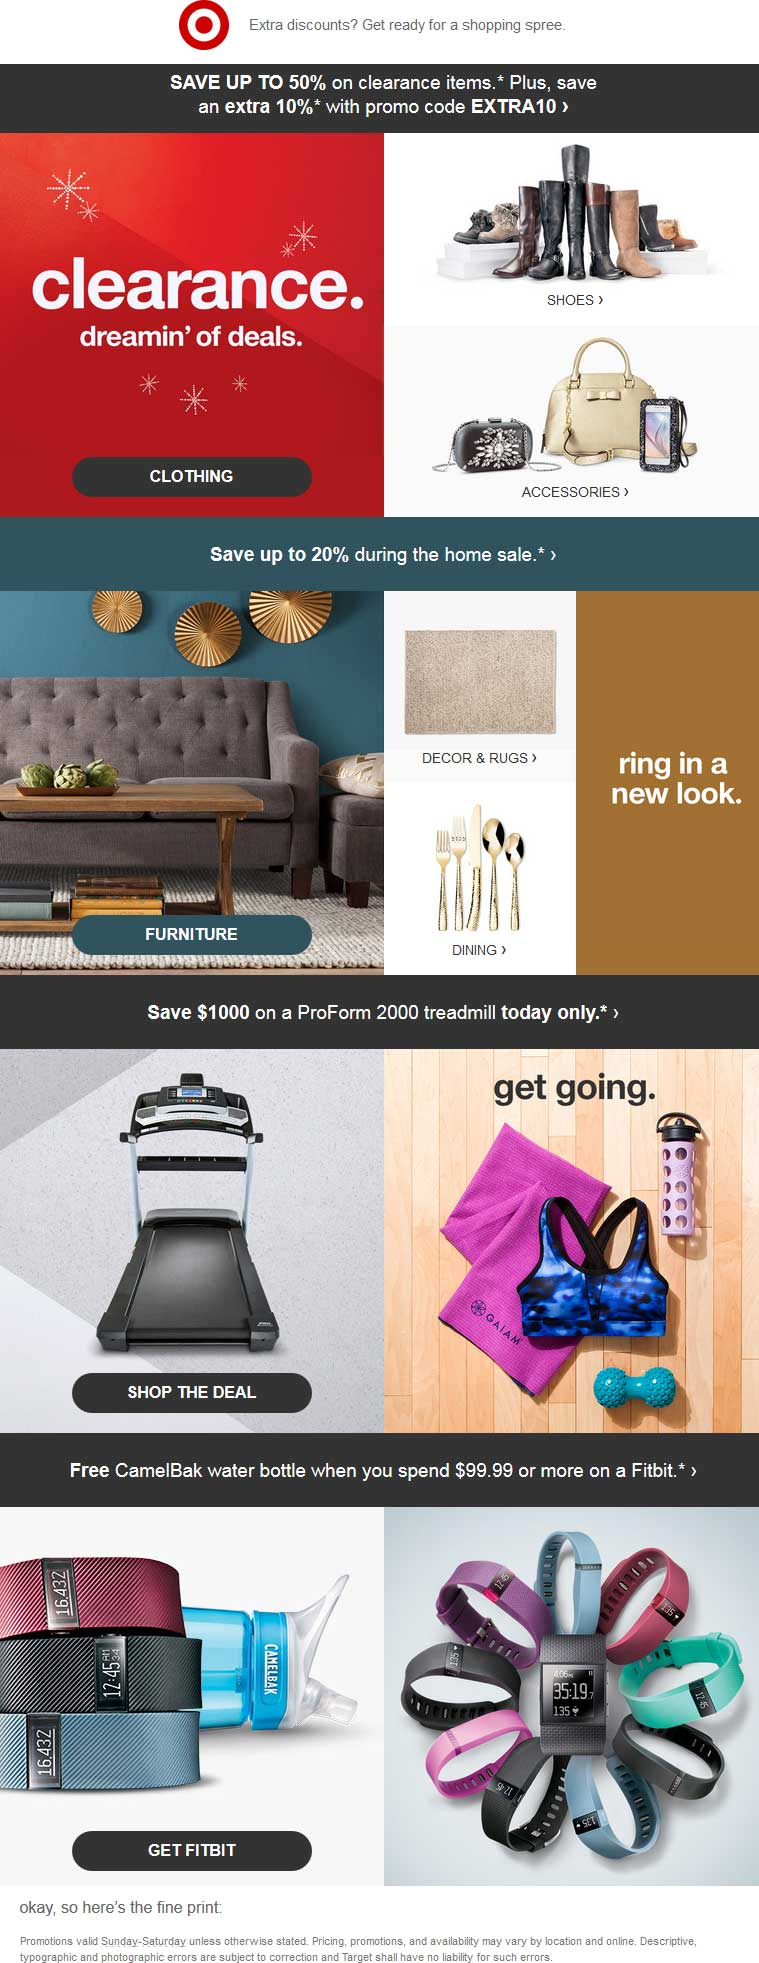 Target.com Promo Coupon 50% off clearance at Target + 10% more online via promo code EXTRA10